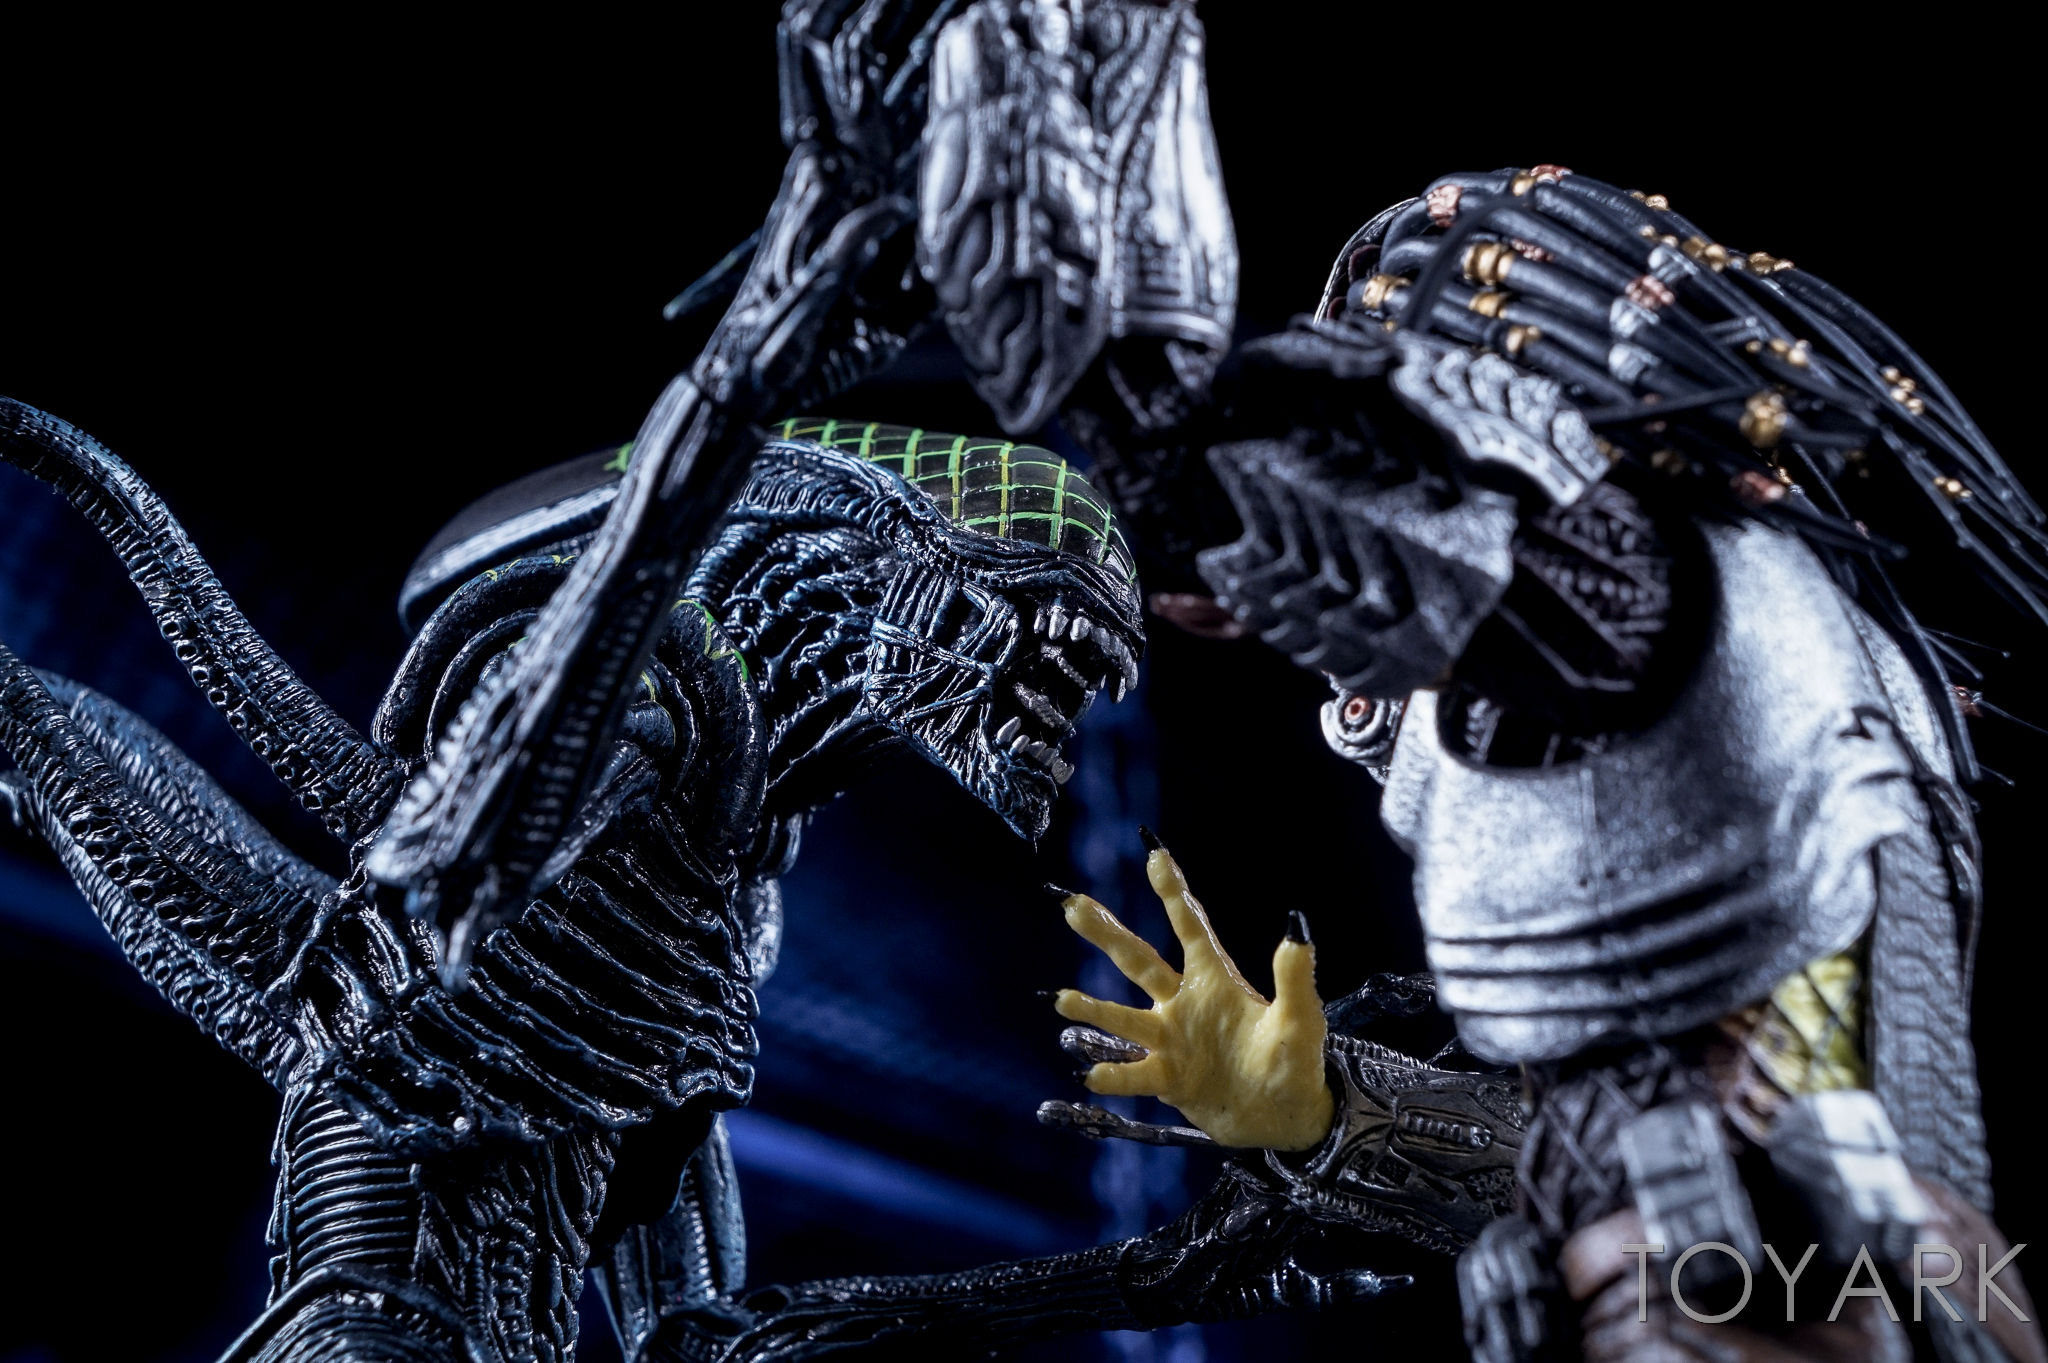 http://news.toyark.com/wp-content/uploads/sites/4/2016/10/NECA-AvP-Rivalry-Reborn-Set-062.jpg